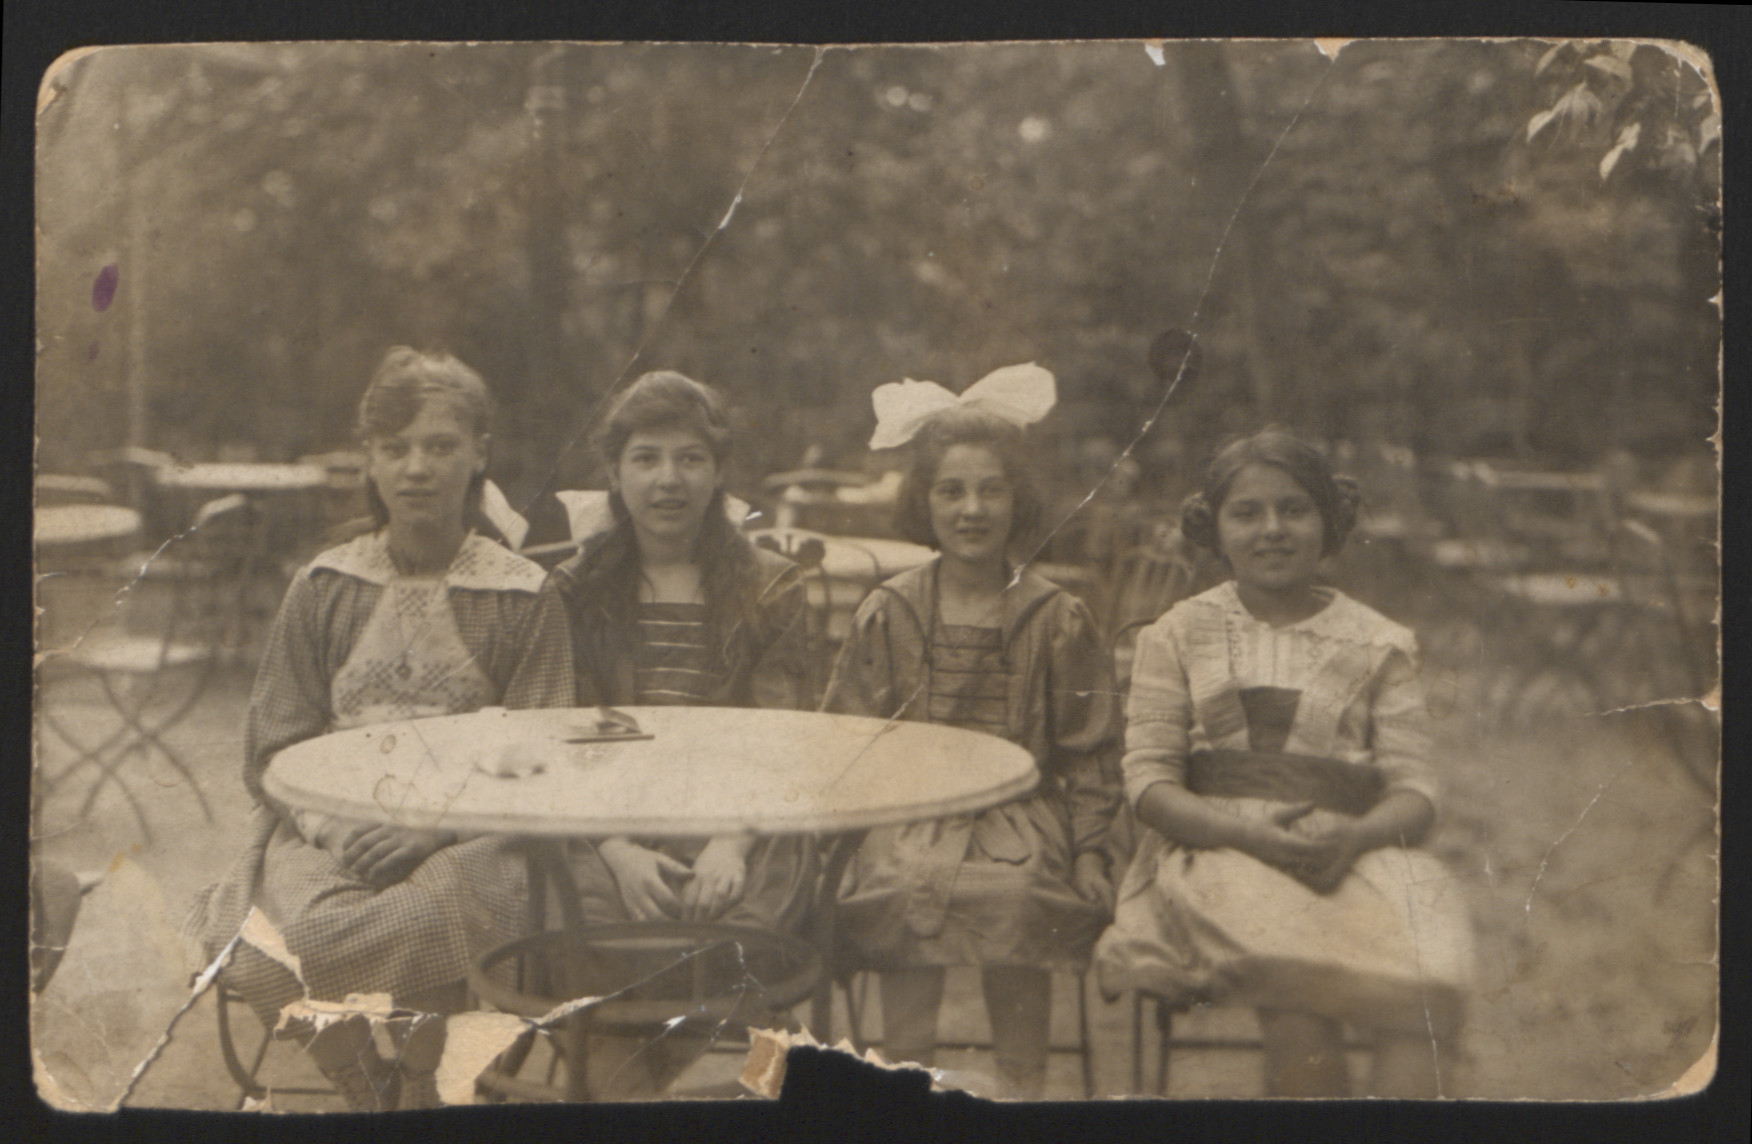 Lilly Roth (second from left) and sister Ilona Roth (third from left) sit outside with two friends.